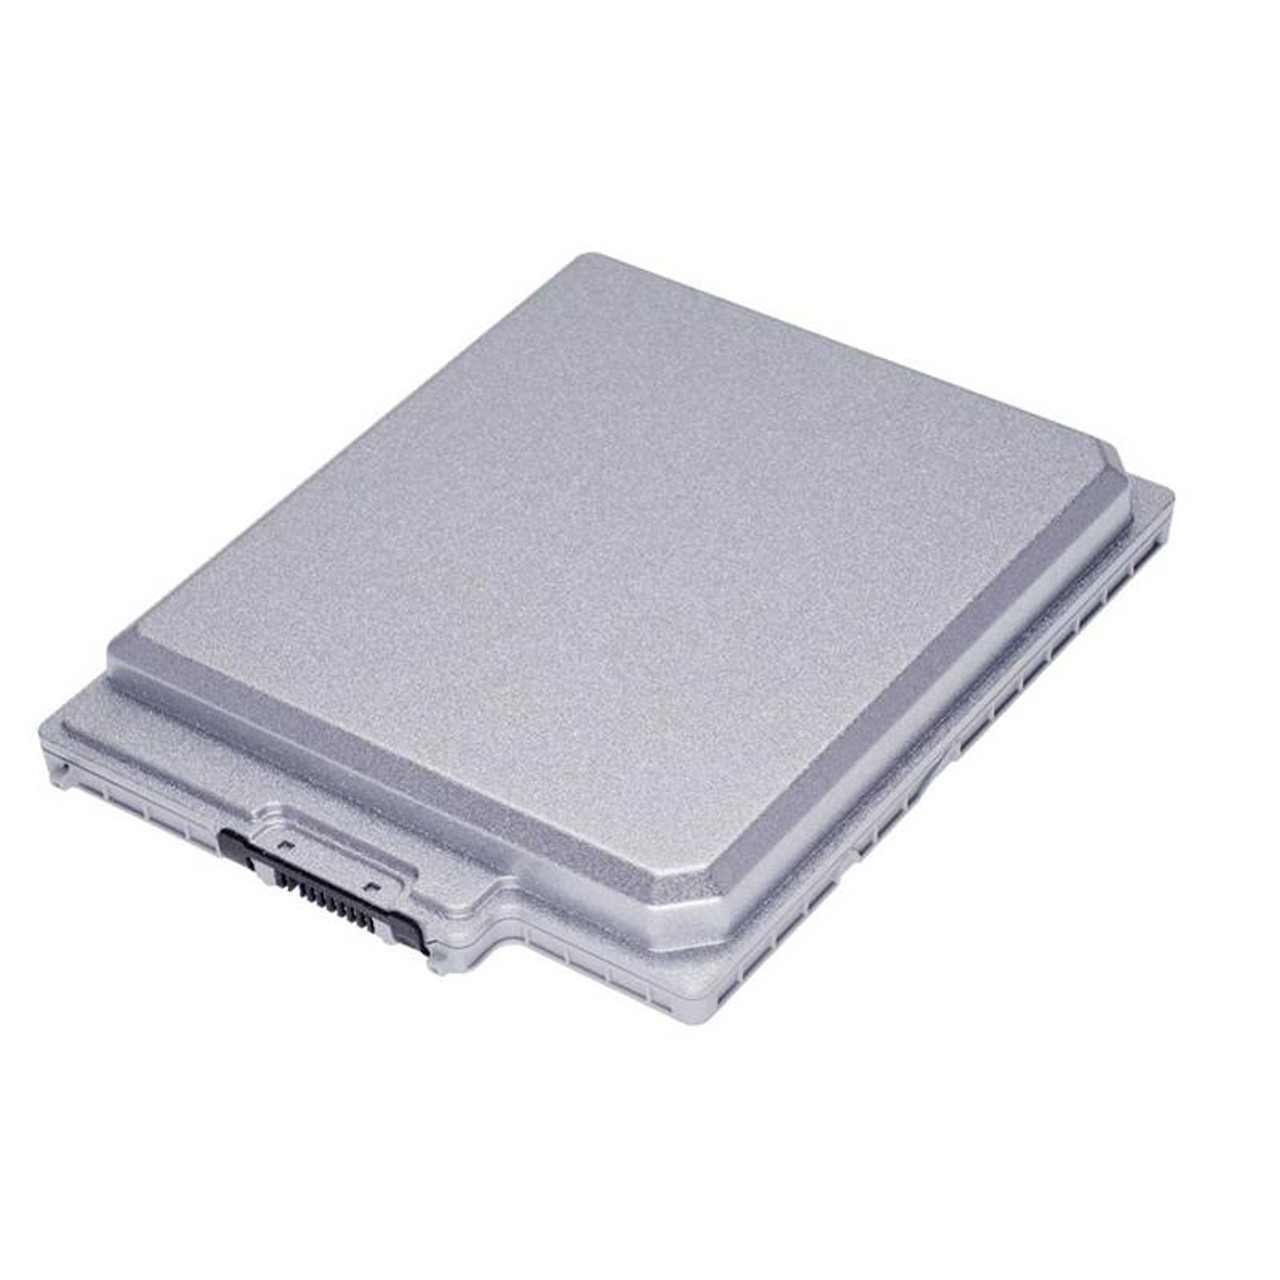 Image for Panasonic Large Battery for FZ-G1 CX Computer Superstore